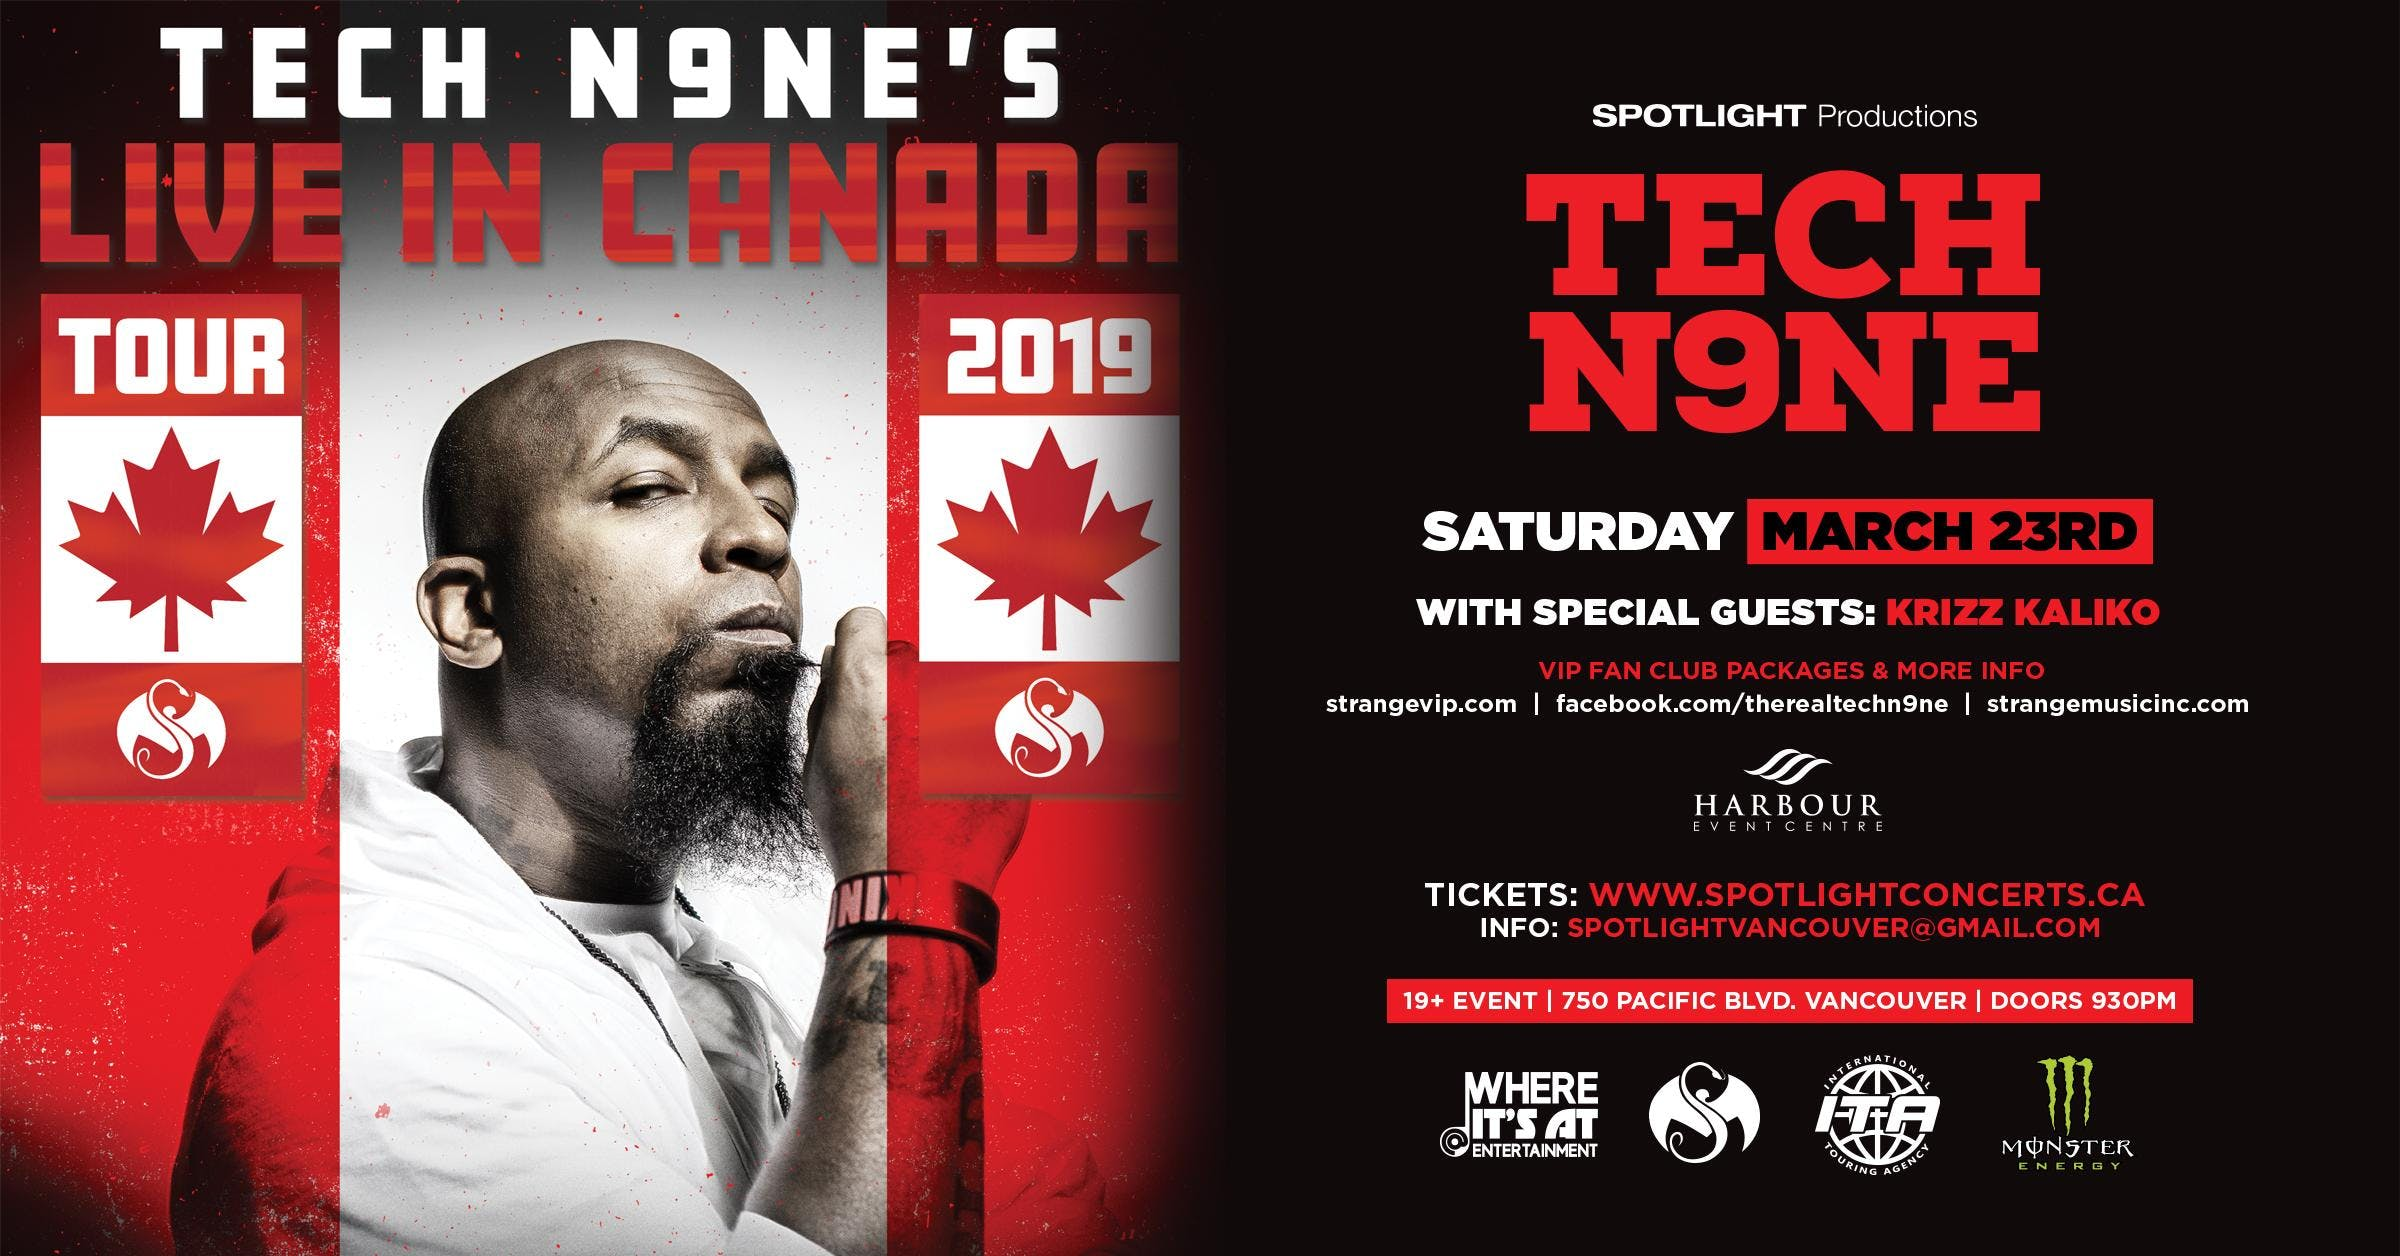 Tech N9ne live in concert - Vancouver